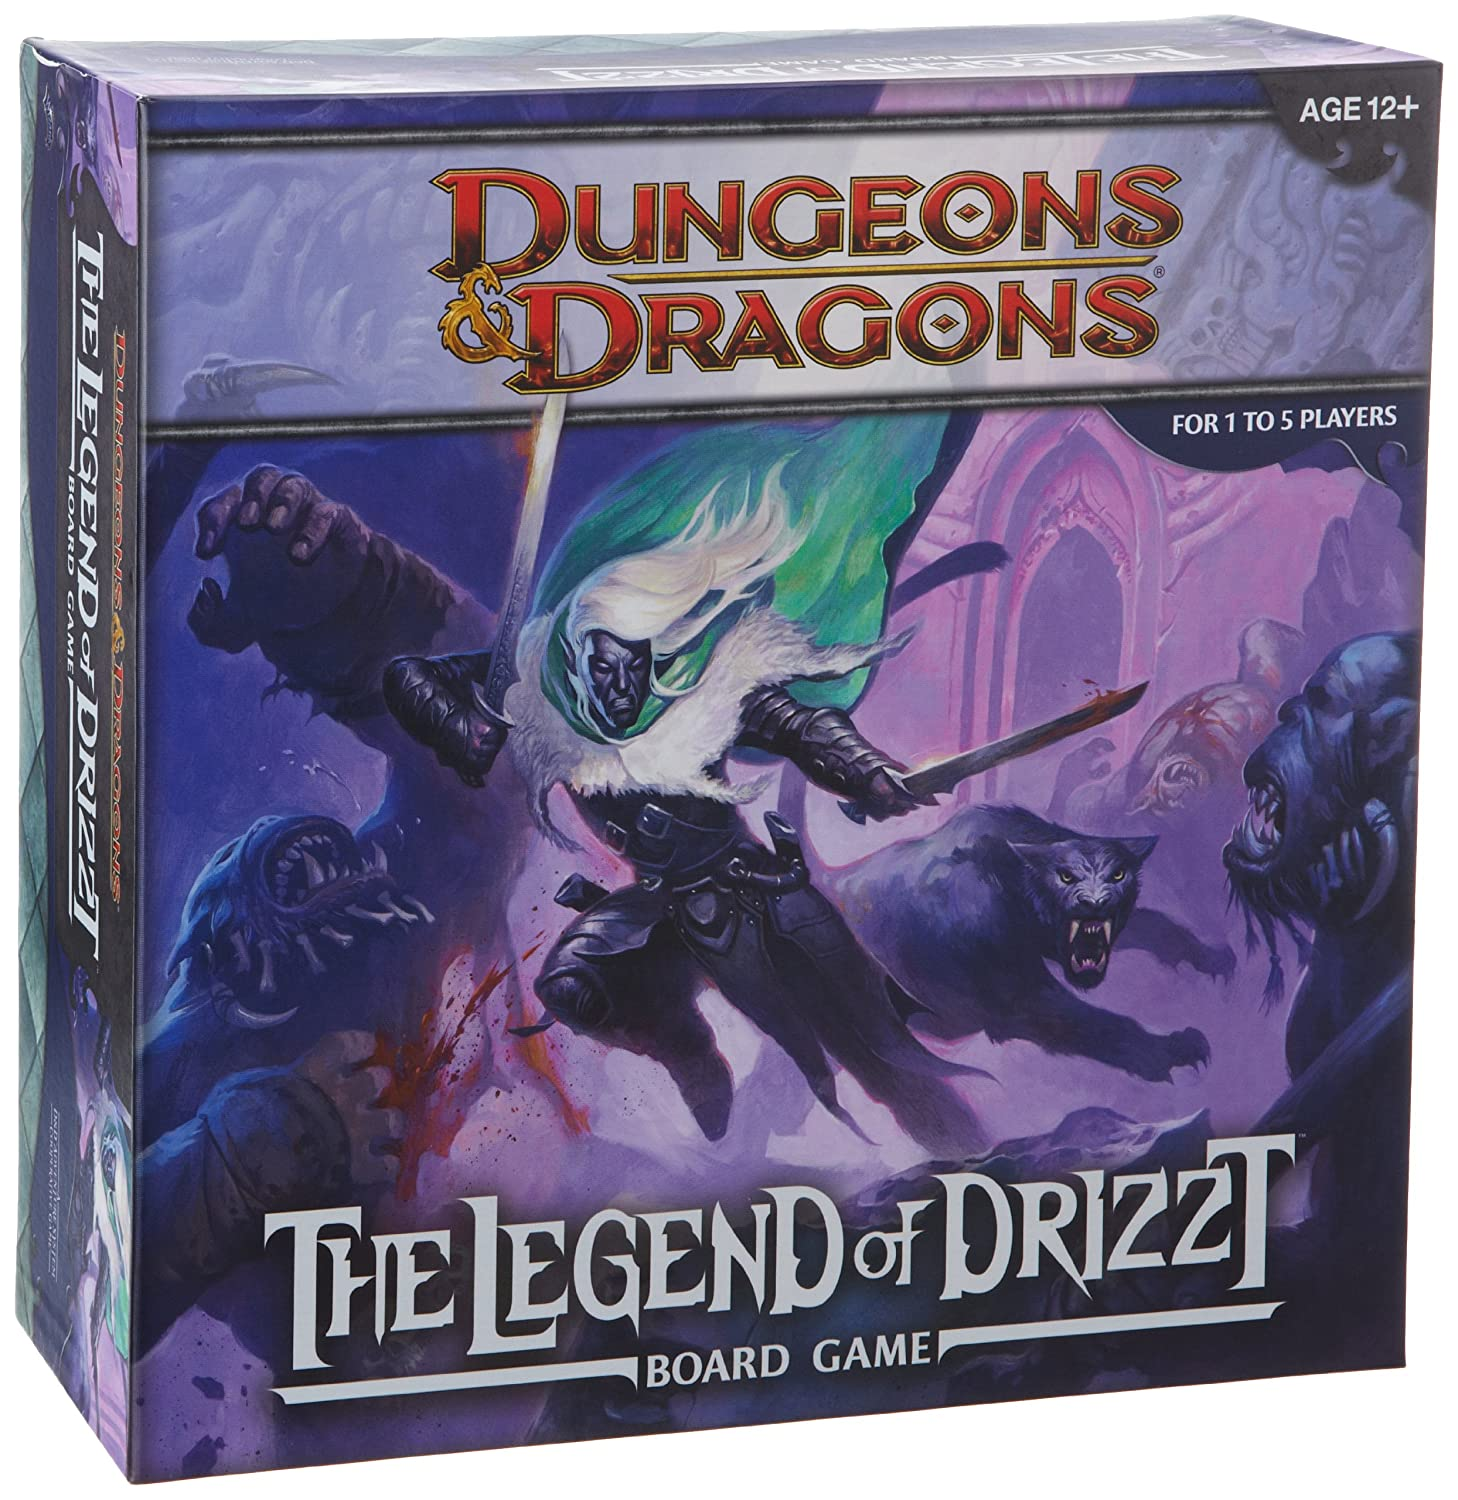 Dungeons & Dragons board game